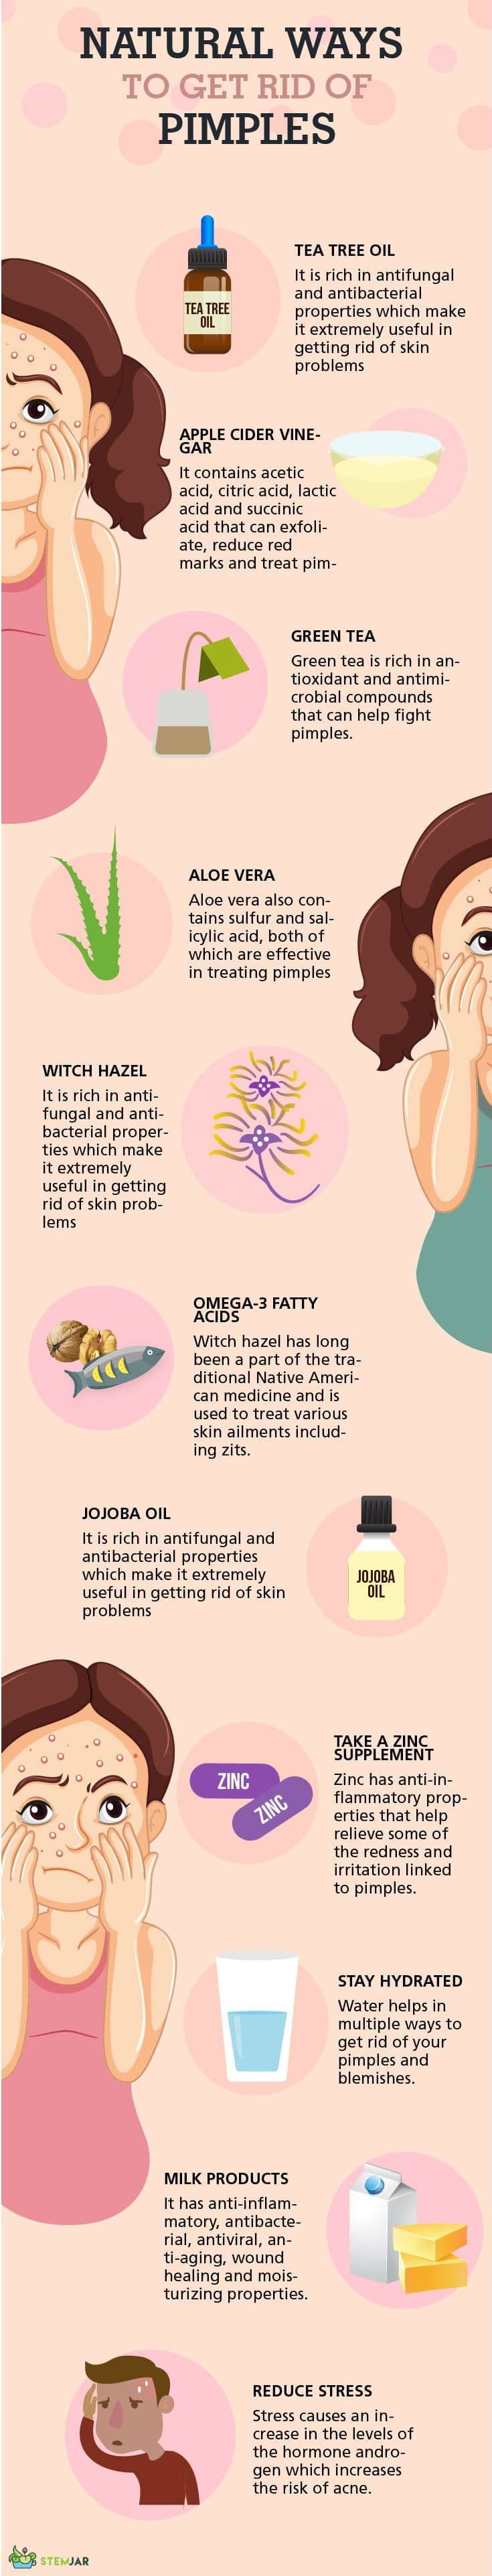 How to Get Rid of Pimples infographic